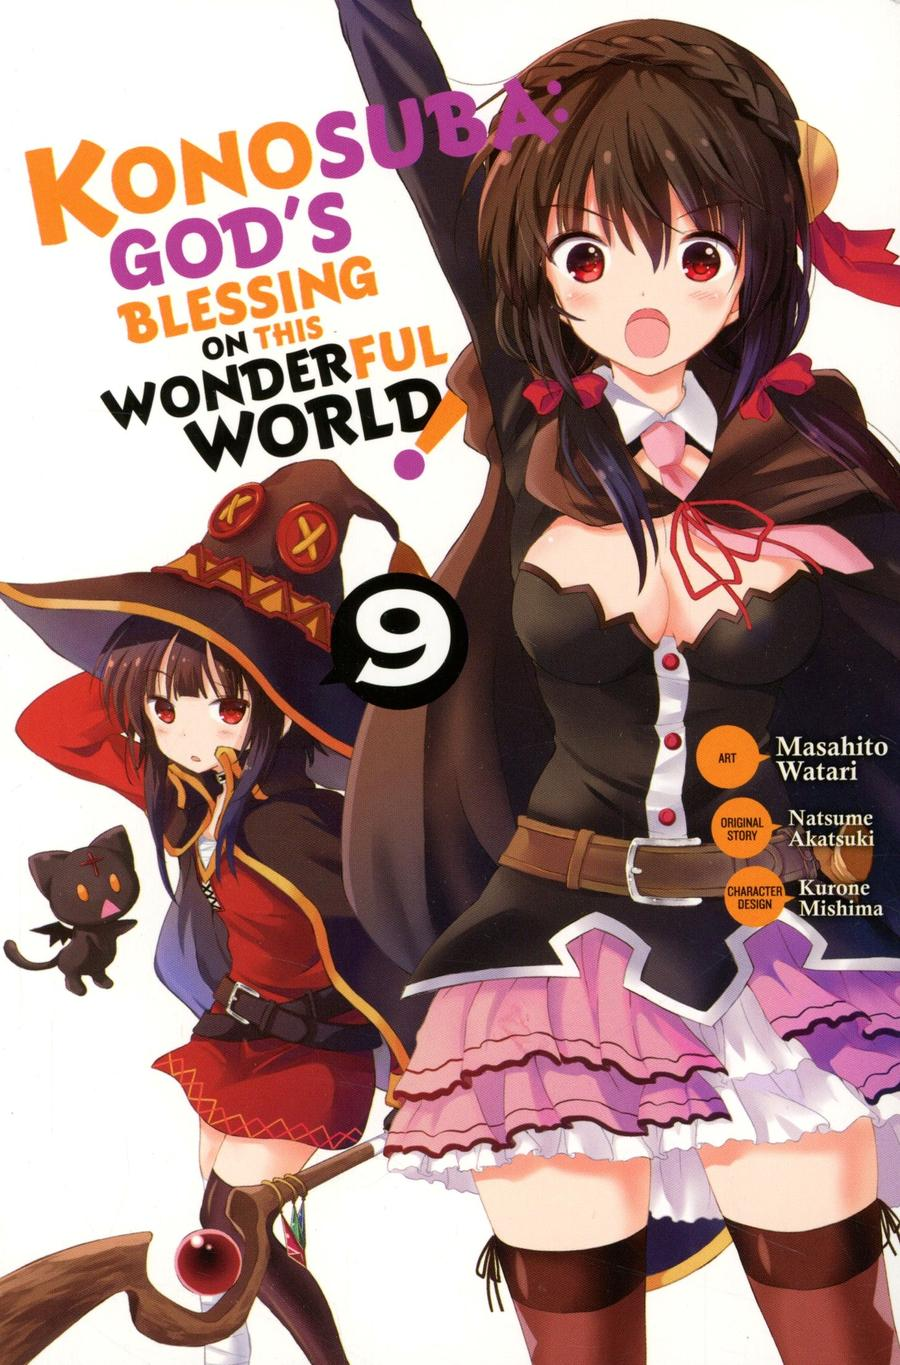 Konosuba Gods Blessing On This Wonderful World Vol 9 GN